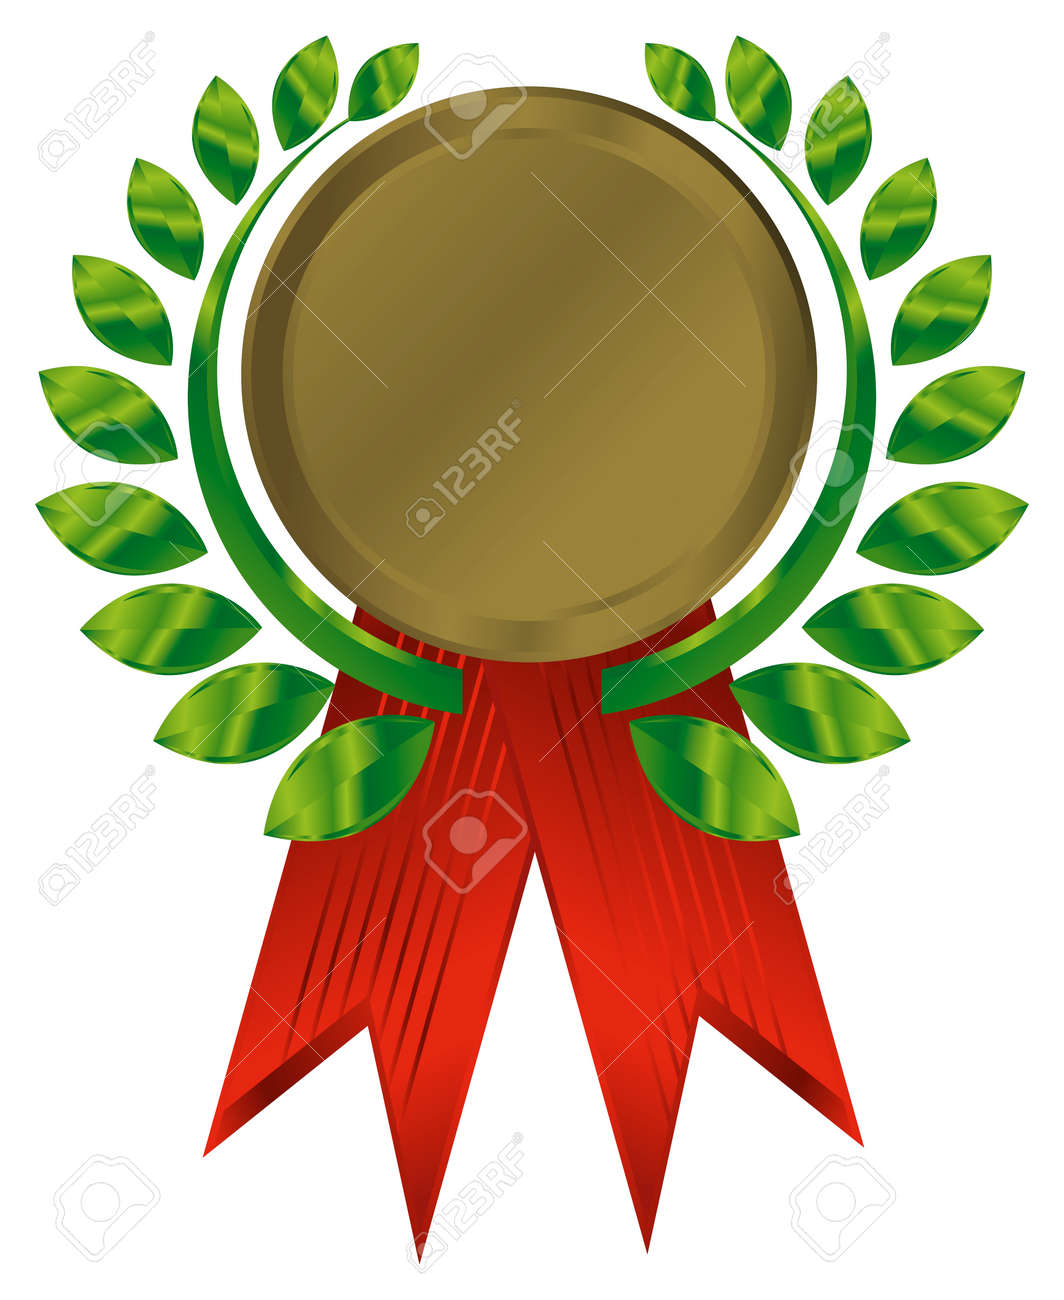 award ribbons. This image is a vector illustration and can be scaled to any size without loss of resolution. - 3883899